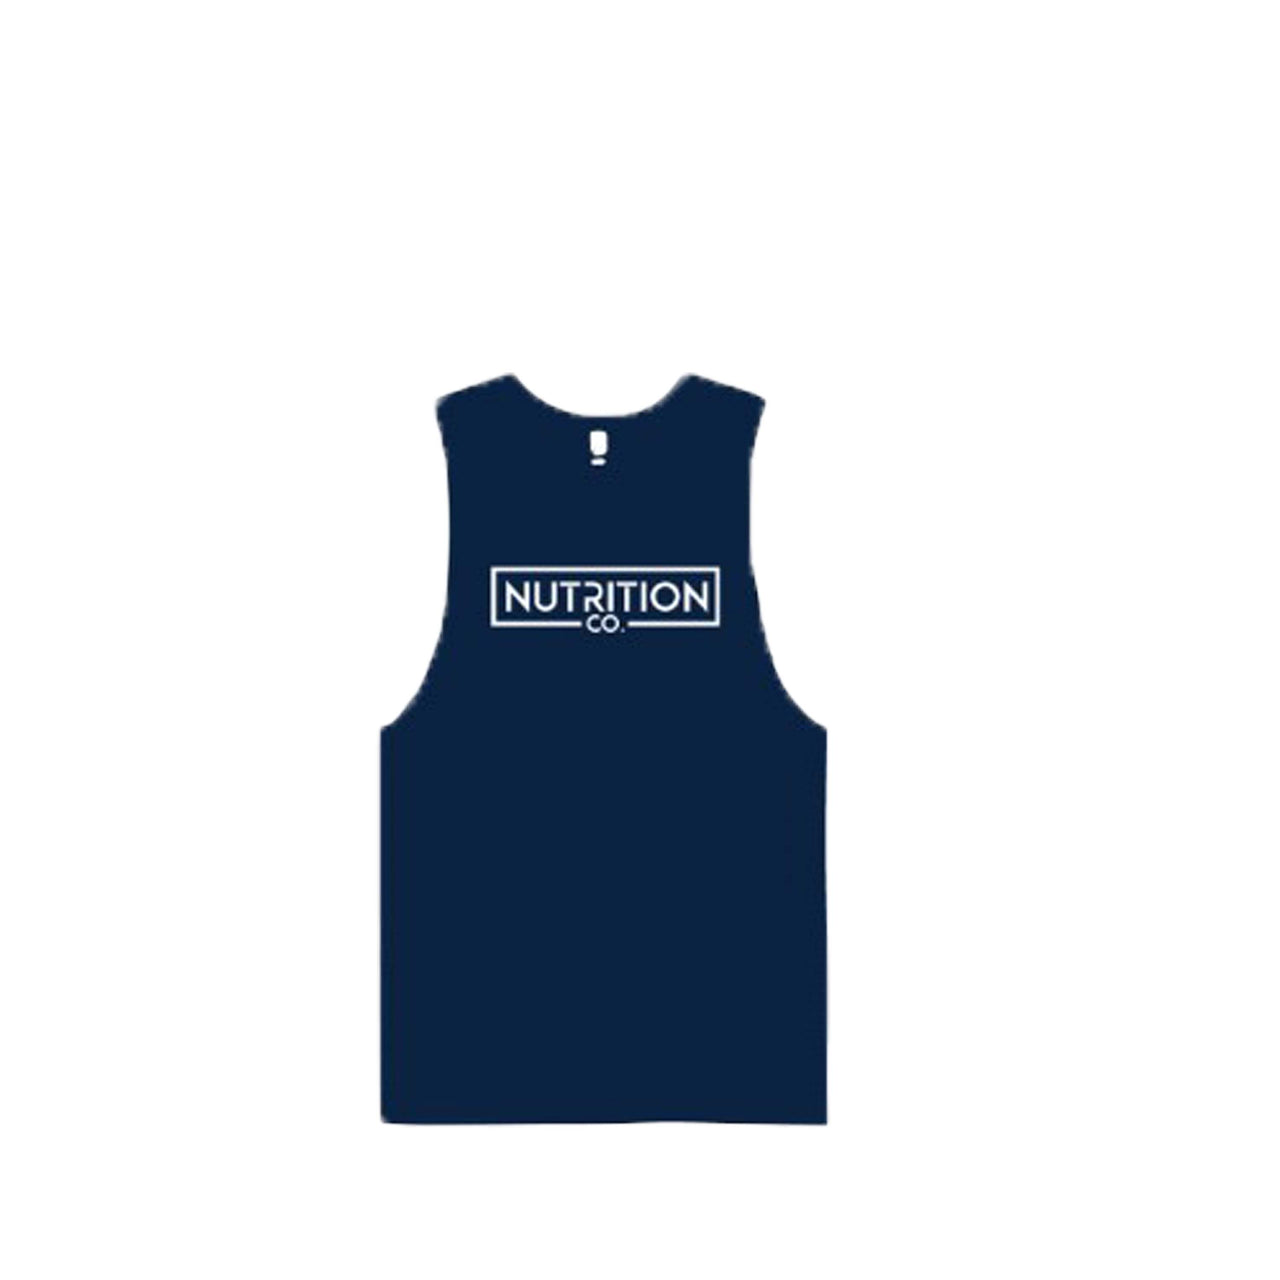 Nutrition Co white Original Navy Tank